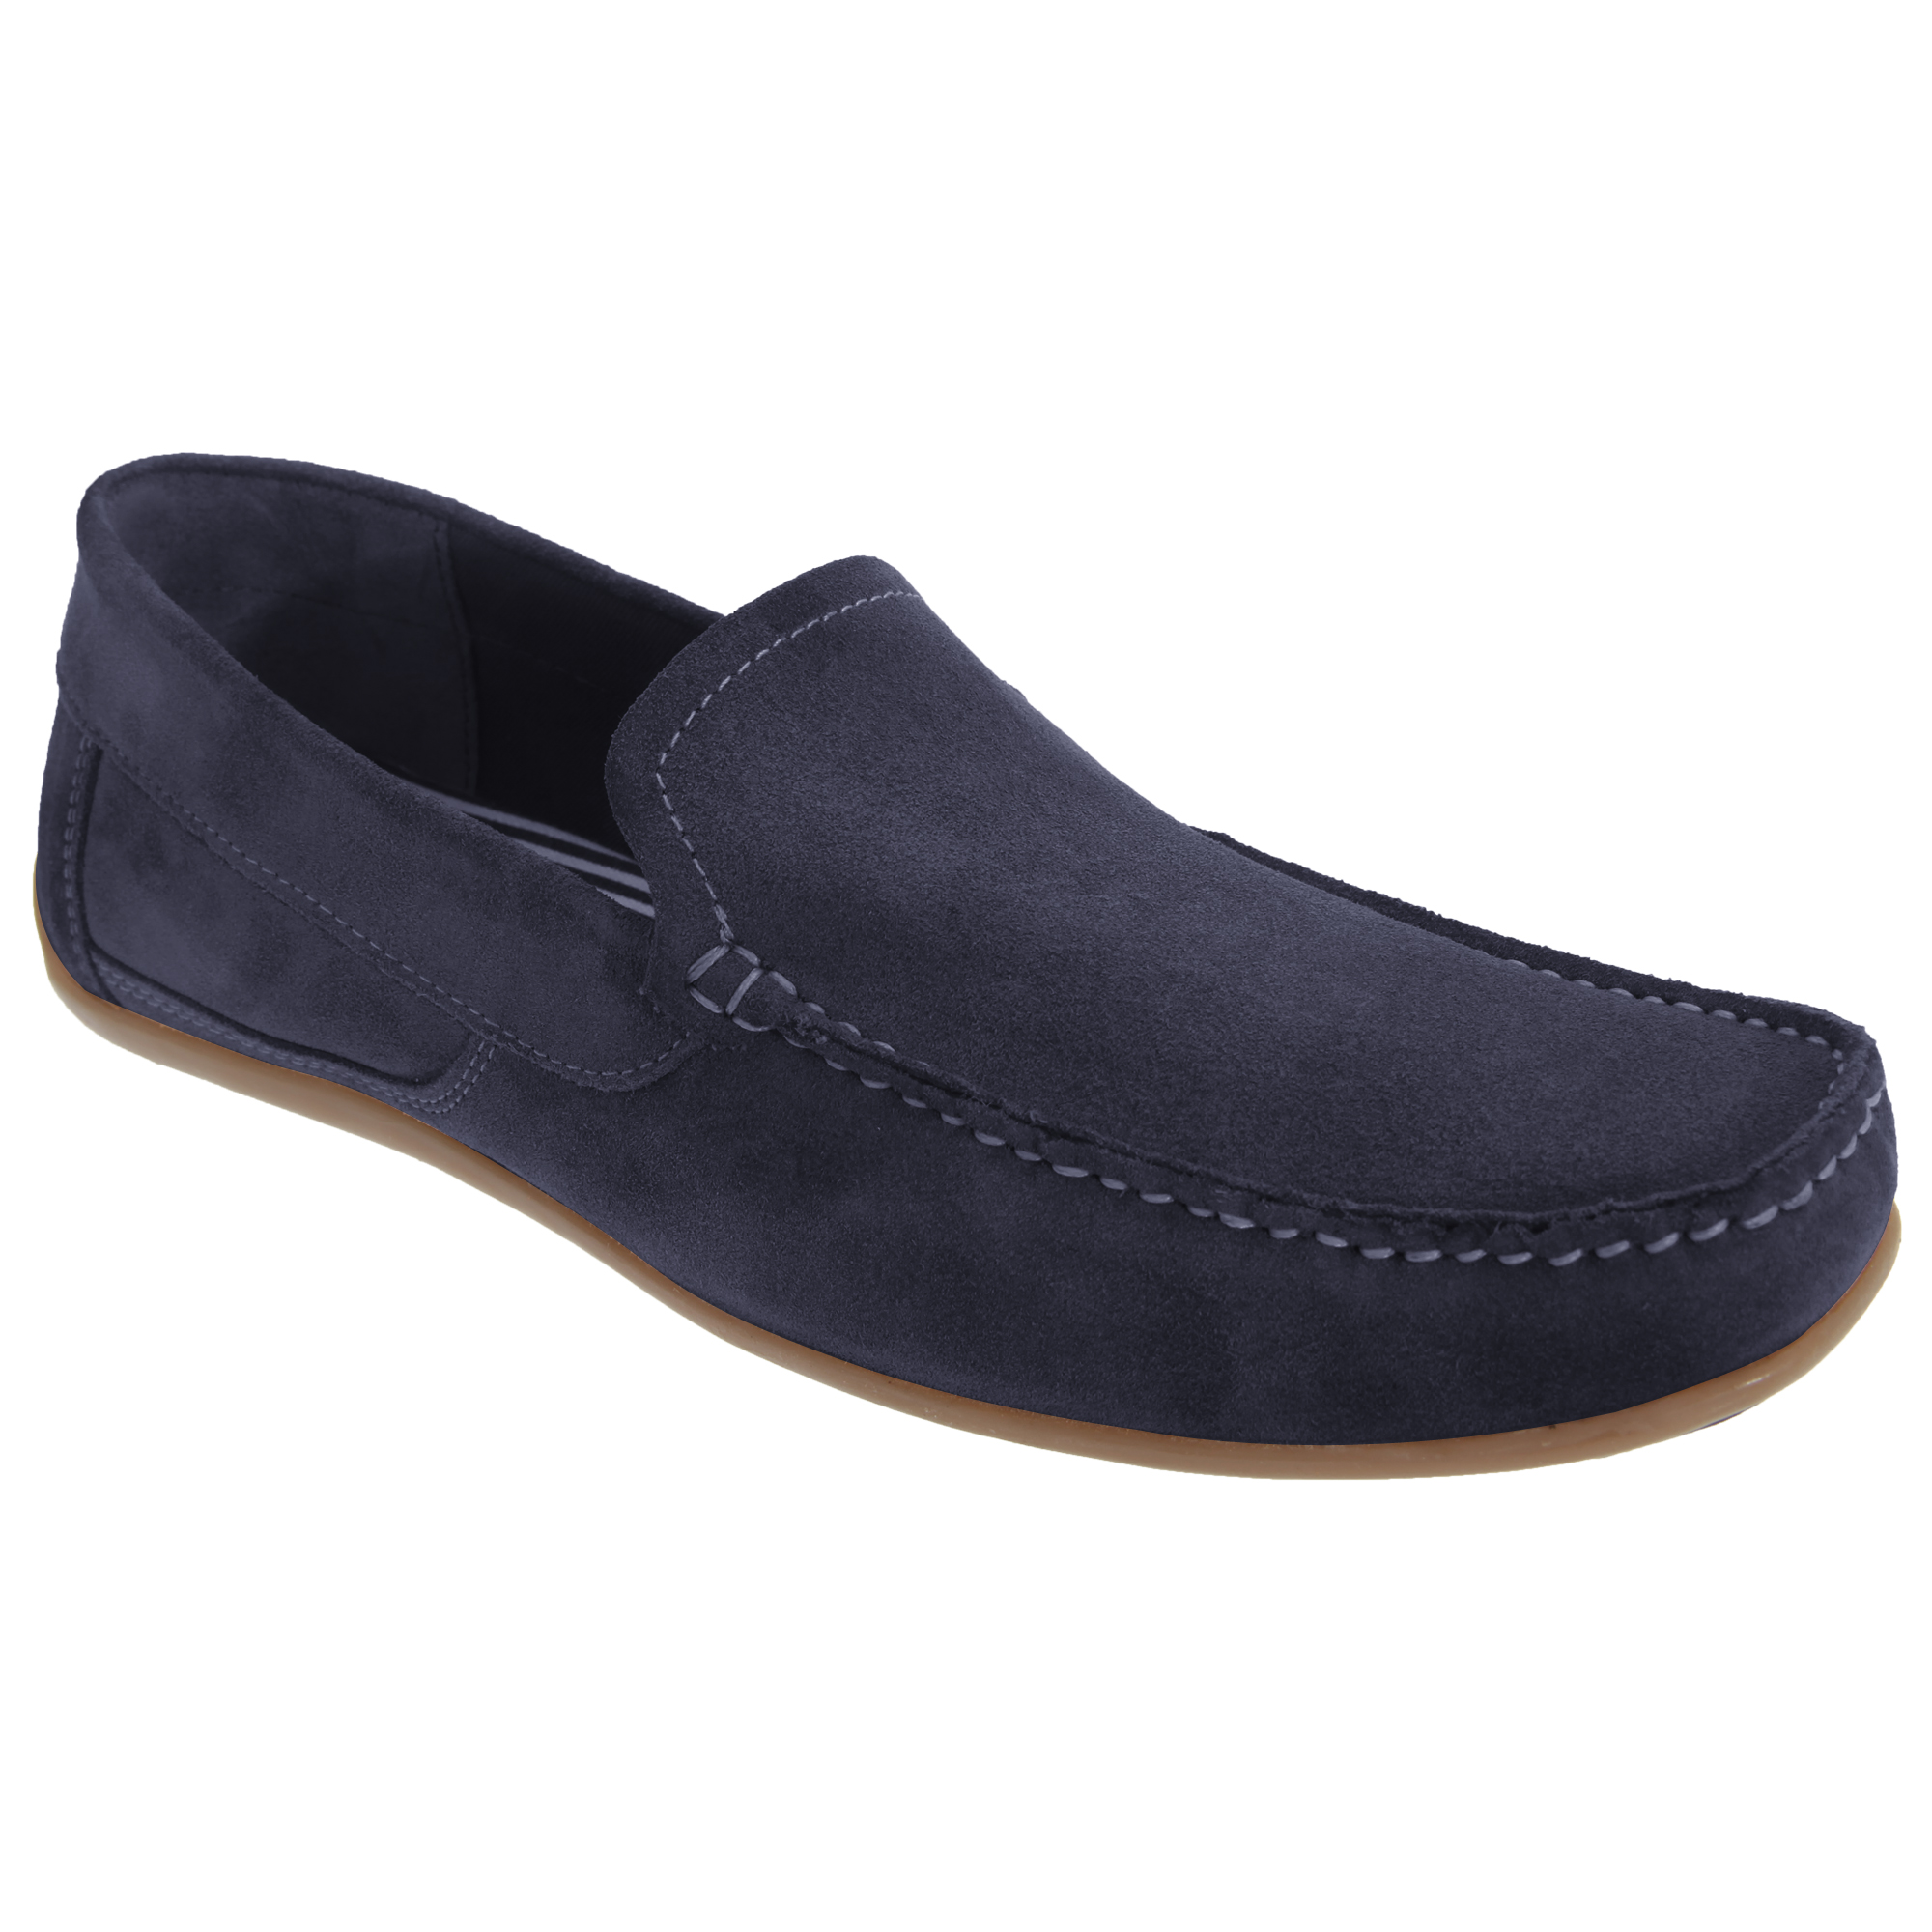 roamers mens real suede leather casual moccasin loafer